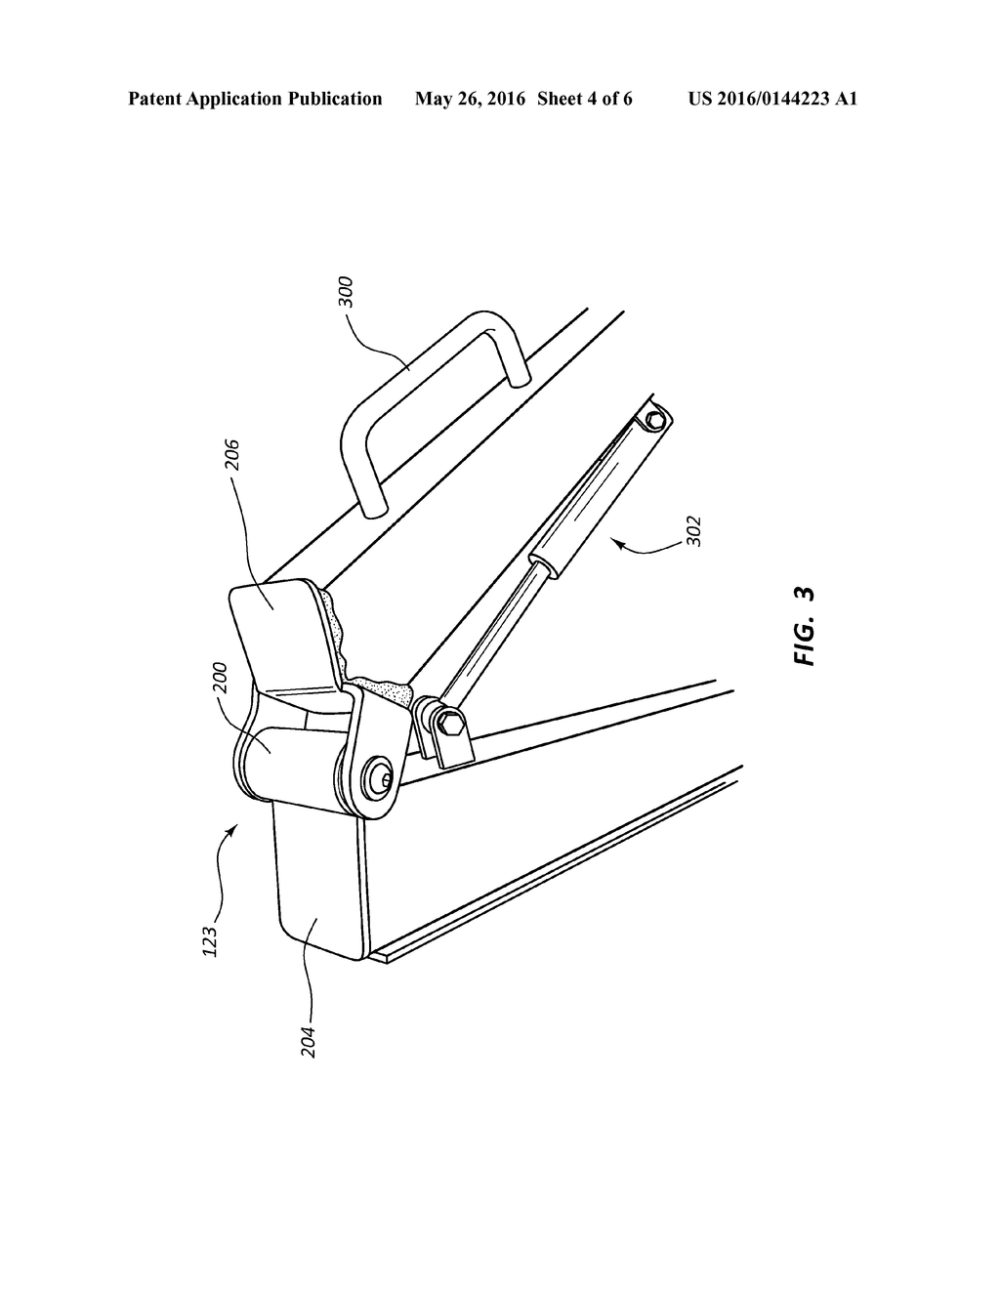 medium resolution of rowing machine having a beam with a hinge joint diagram schematic and image 05